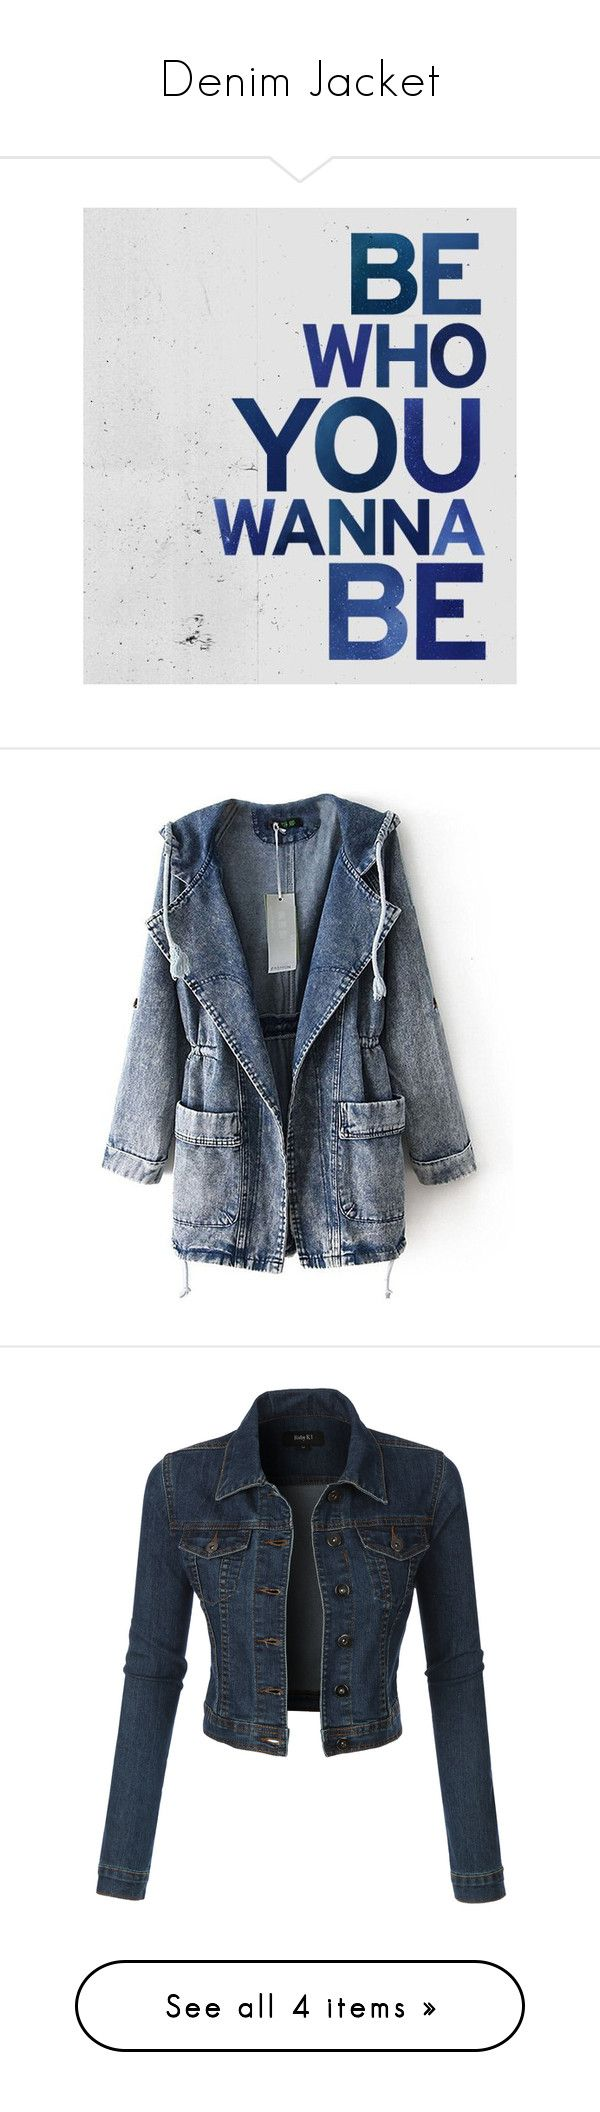 """""""Denim Jacket"""" by tiarakukreja-style ❤ liked on Polyvore featuring text, quotes, words, phrase, saying, outerwear, coats, hooded coat, long overcoat and long trench coat"""